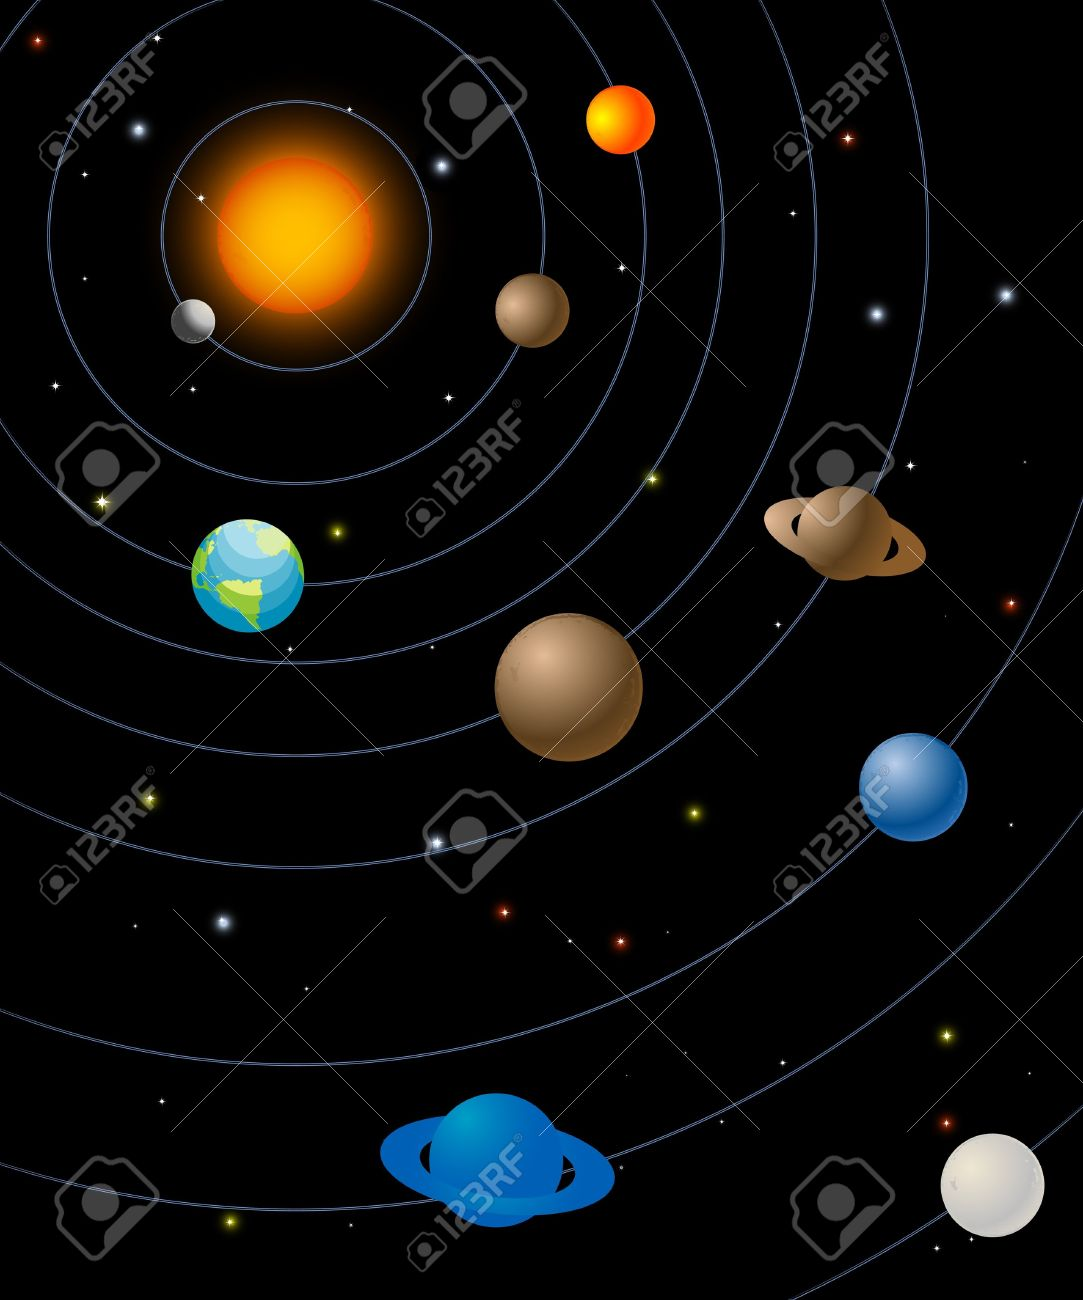 Universe clipart #4, Download drawings